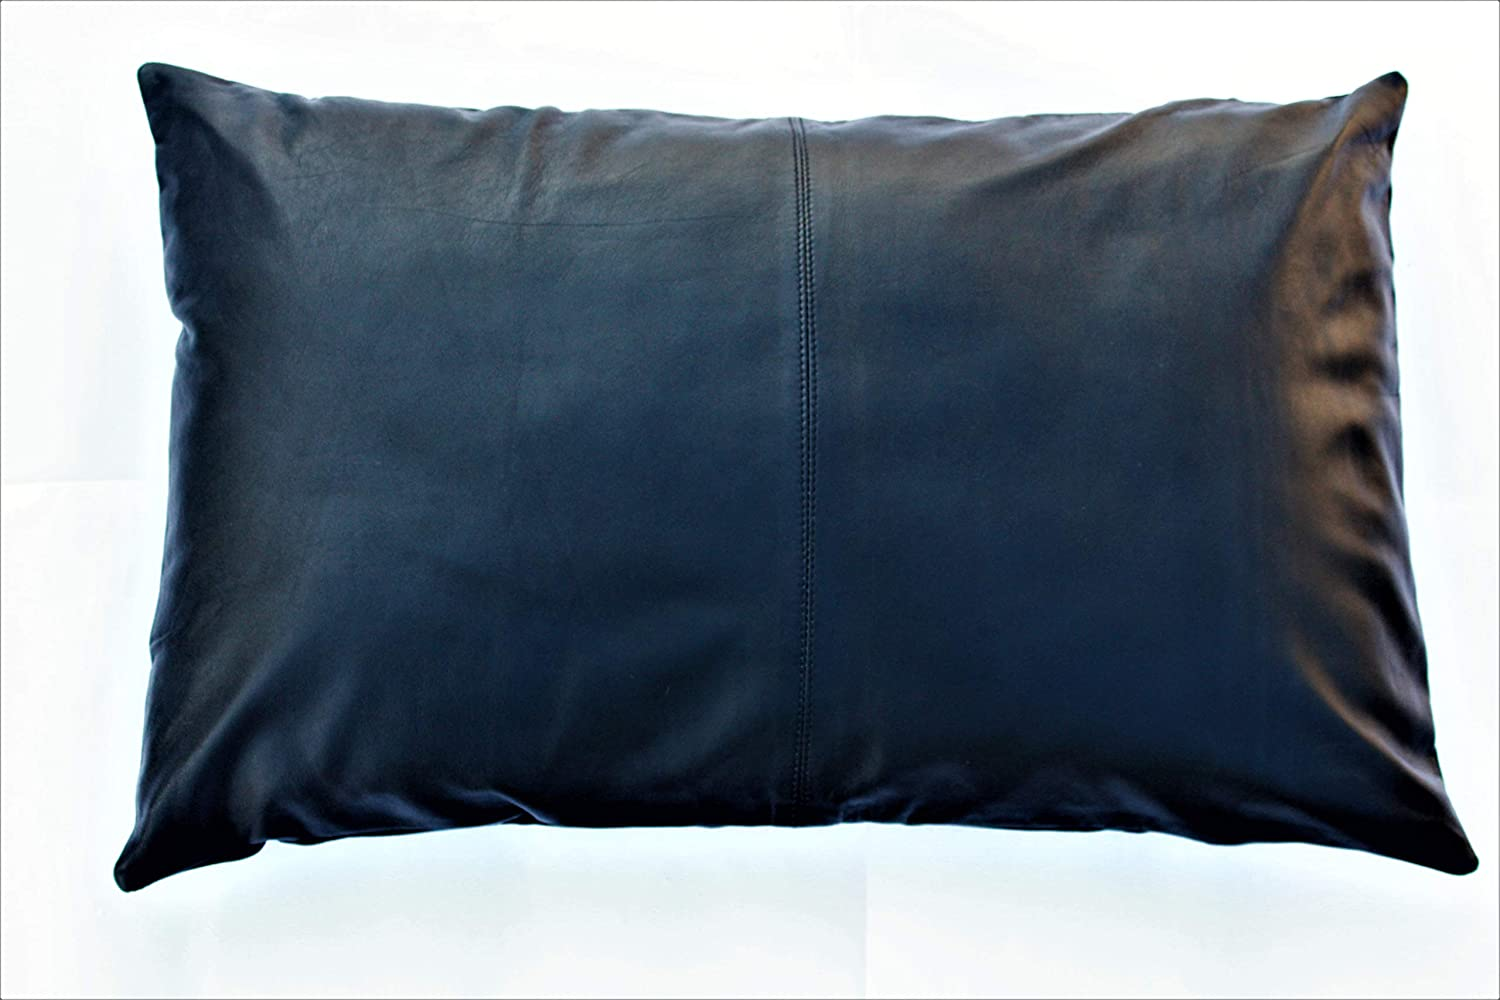 Black, 20x20 Aaron Craft Lambskin Leather Cushion Pillow Cover